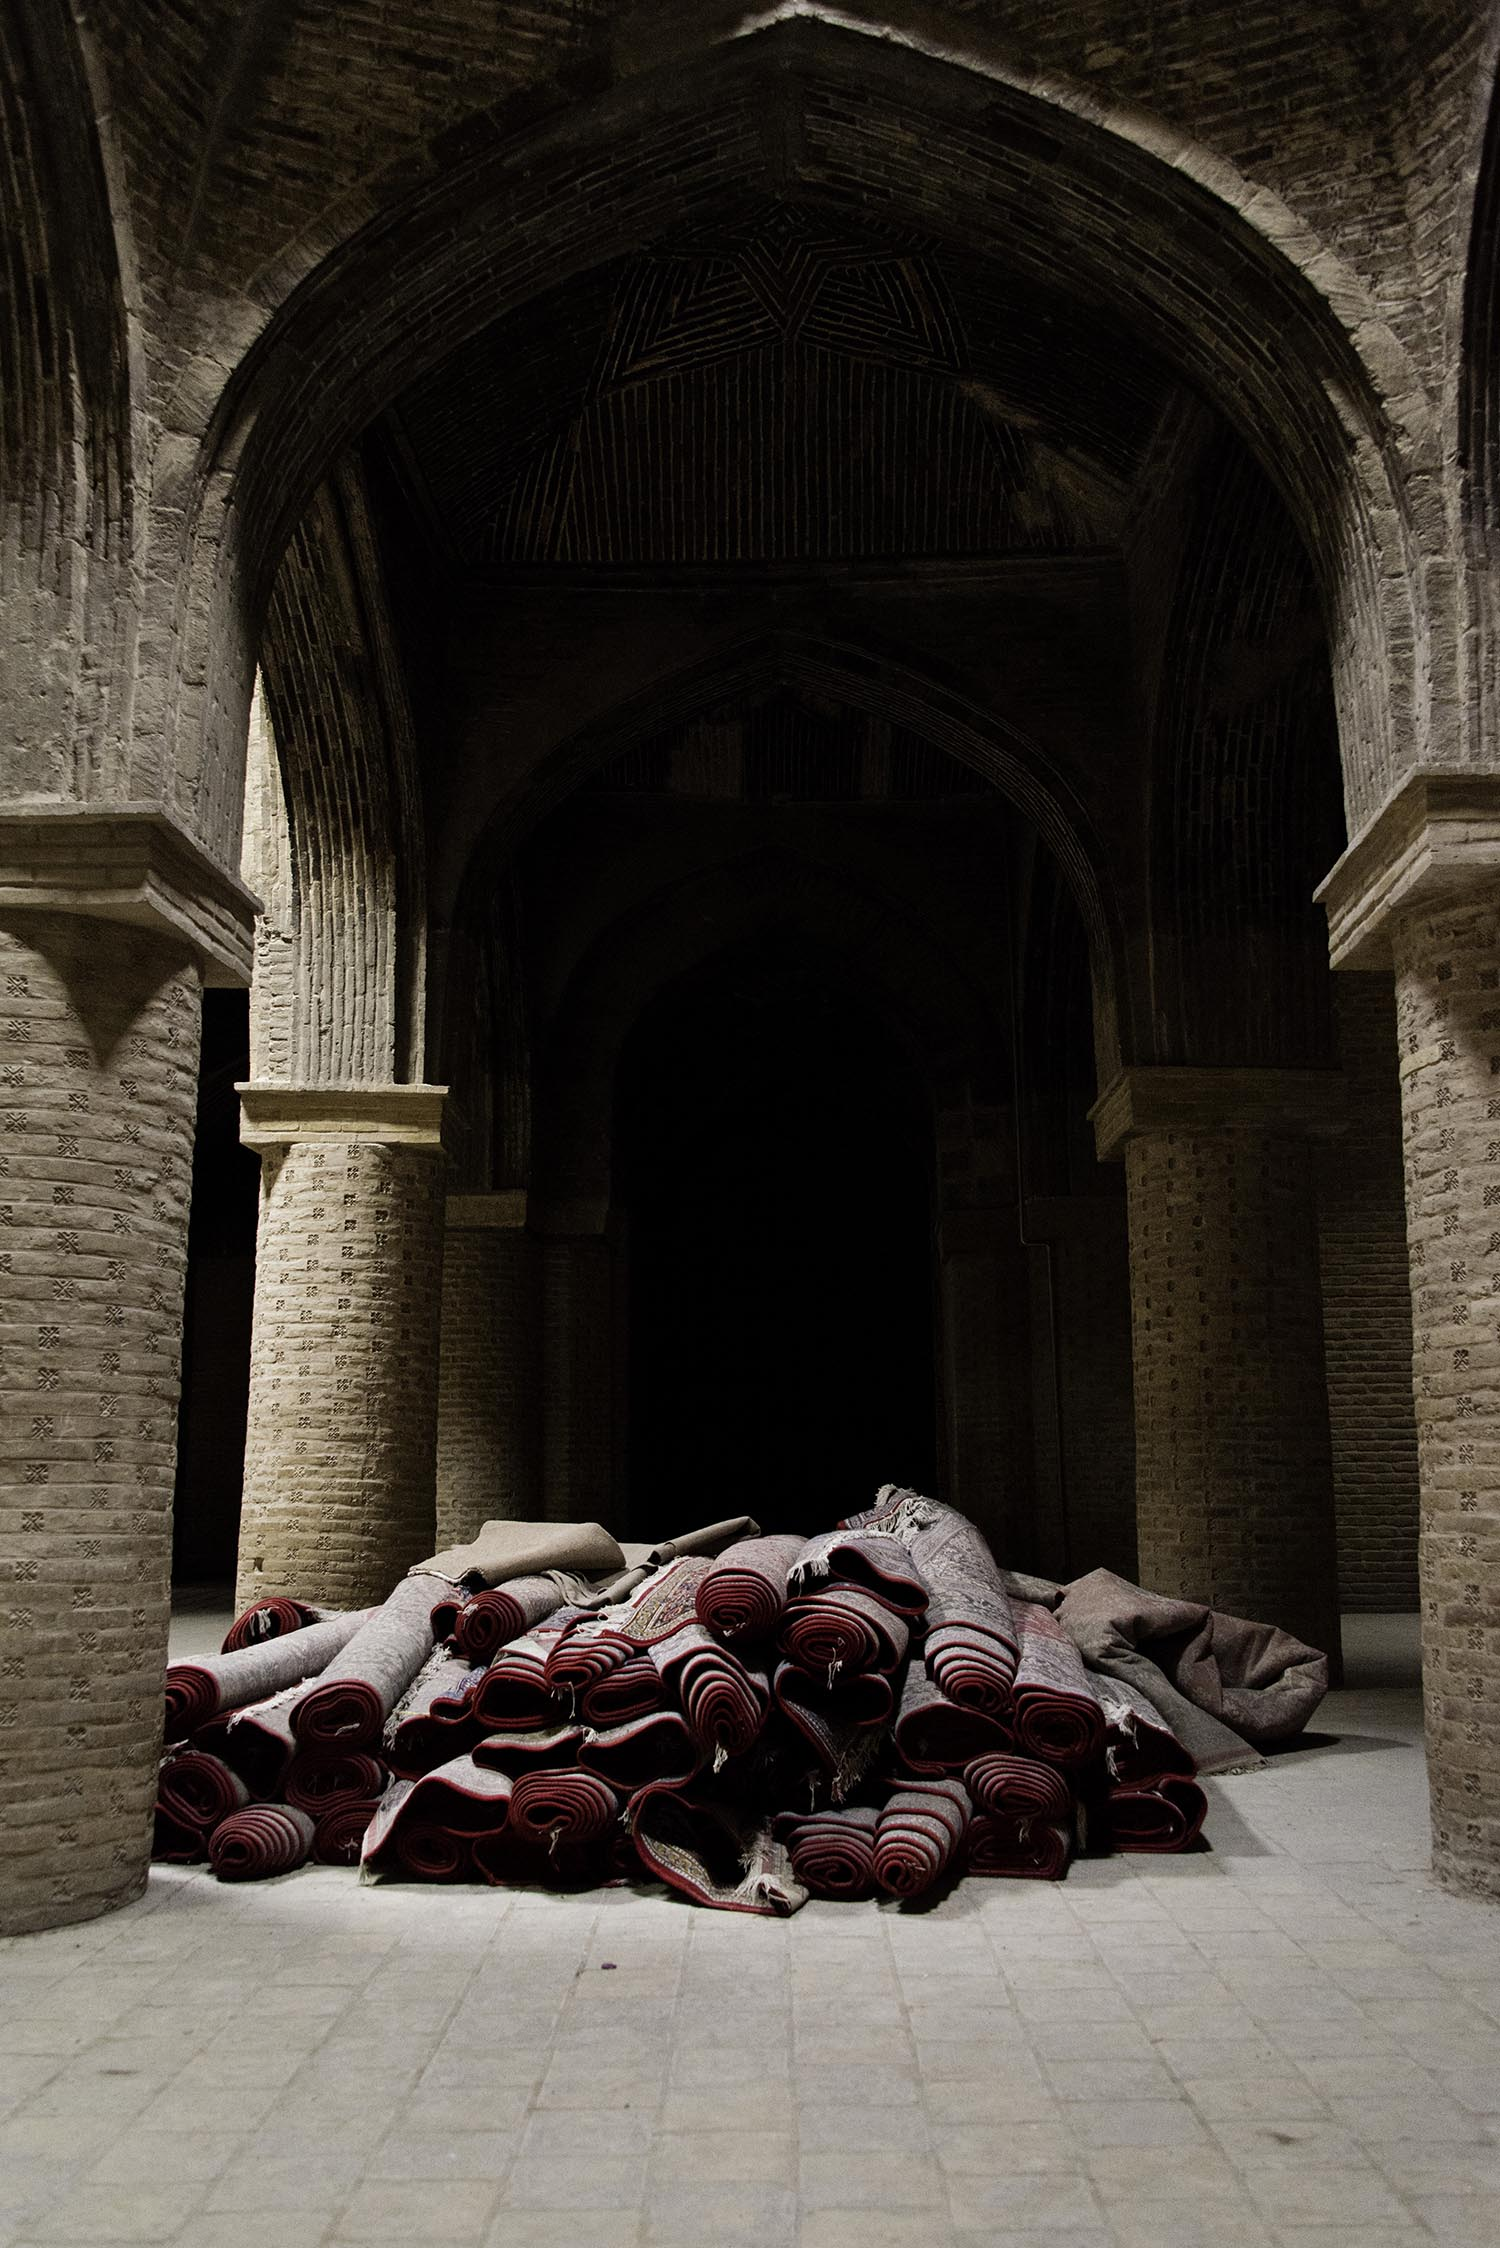 Pile of Rolled Prayer Rugs